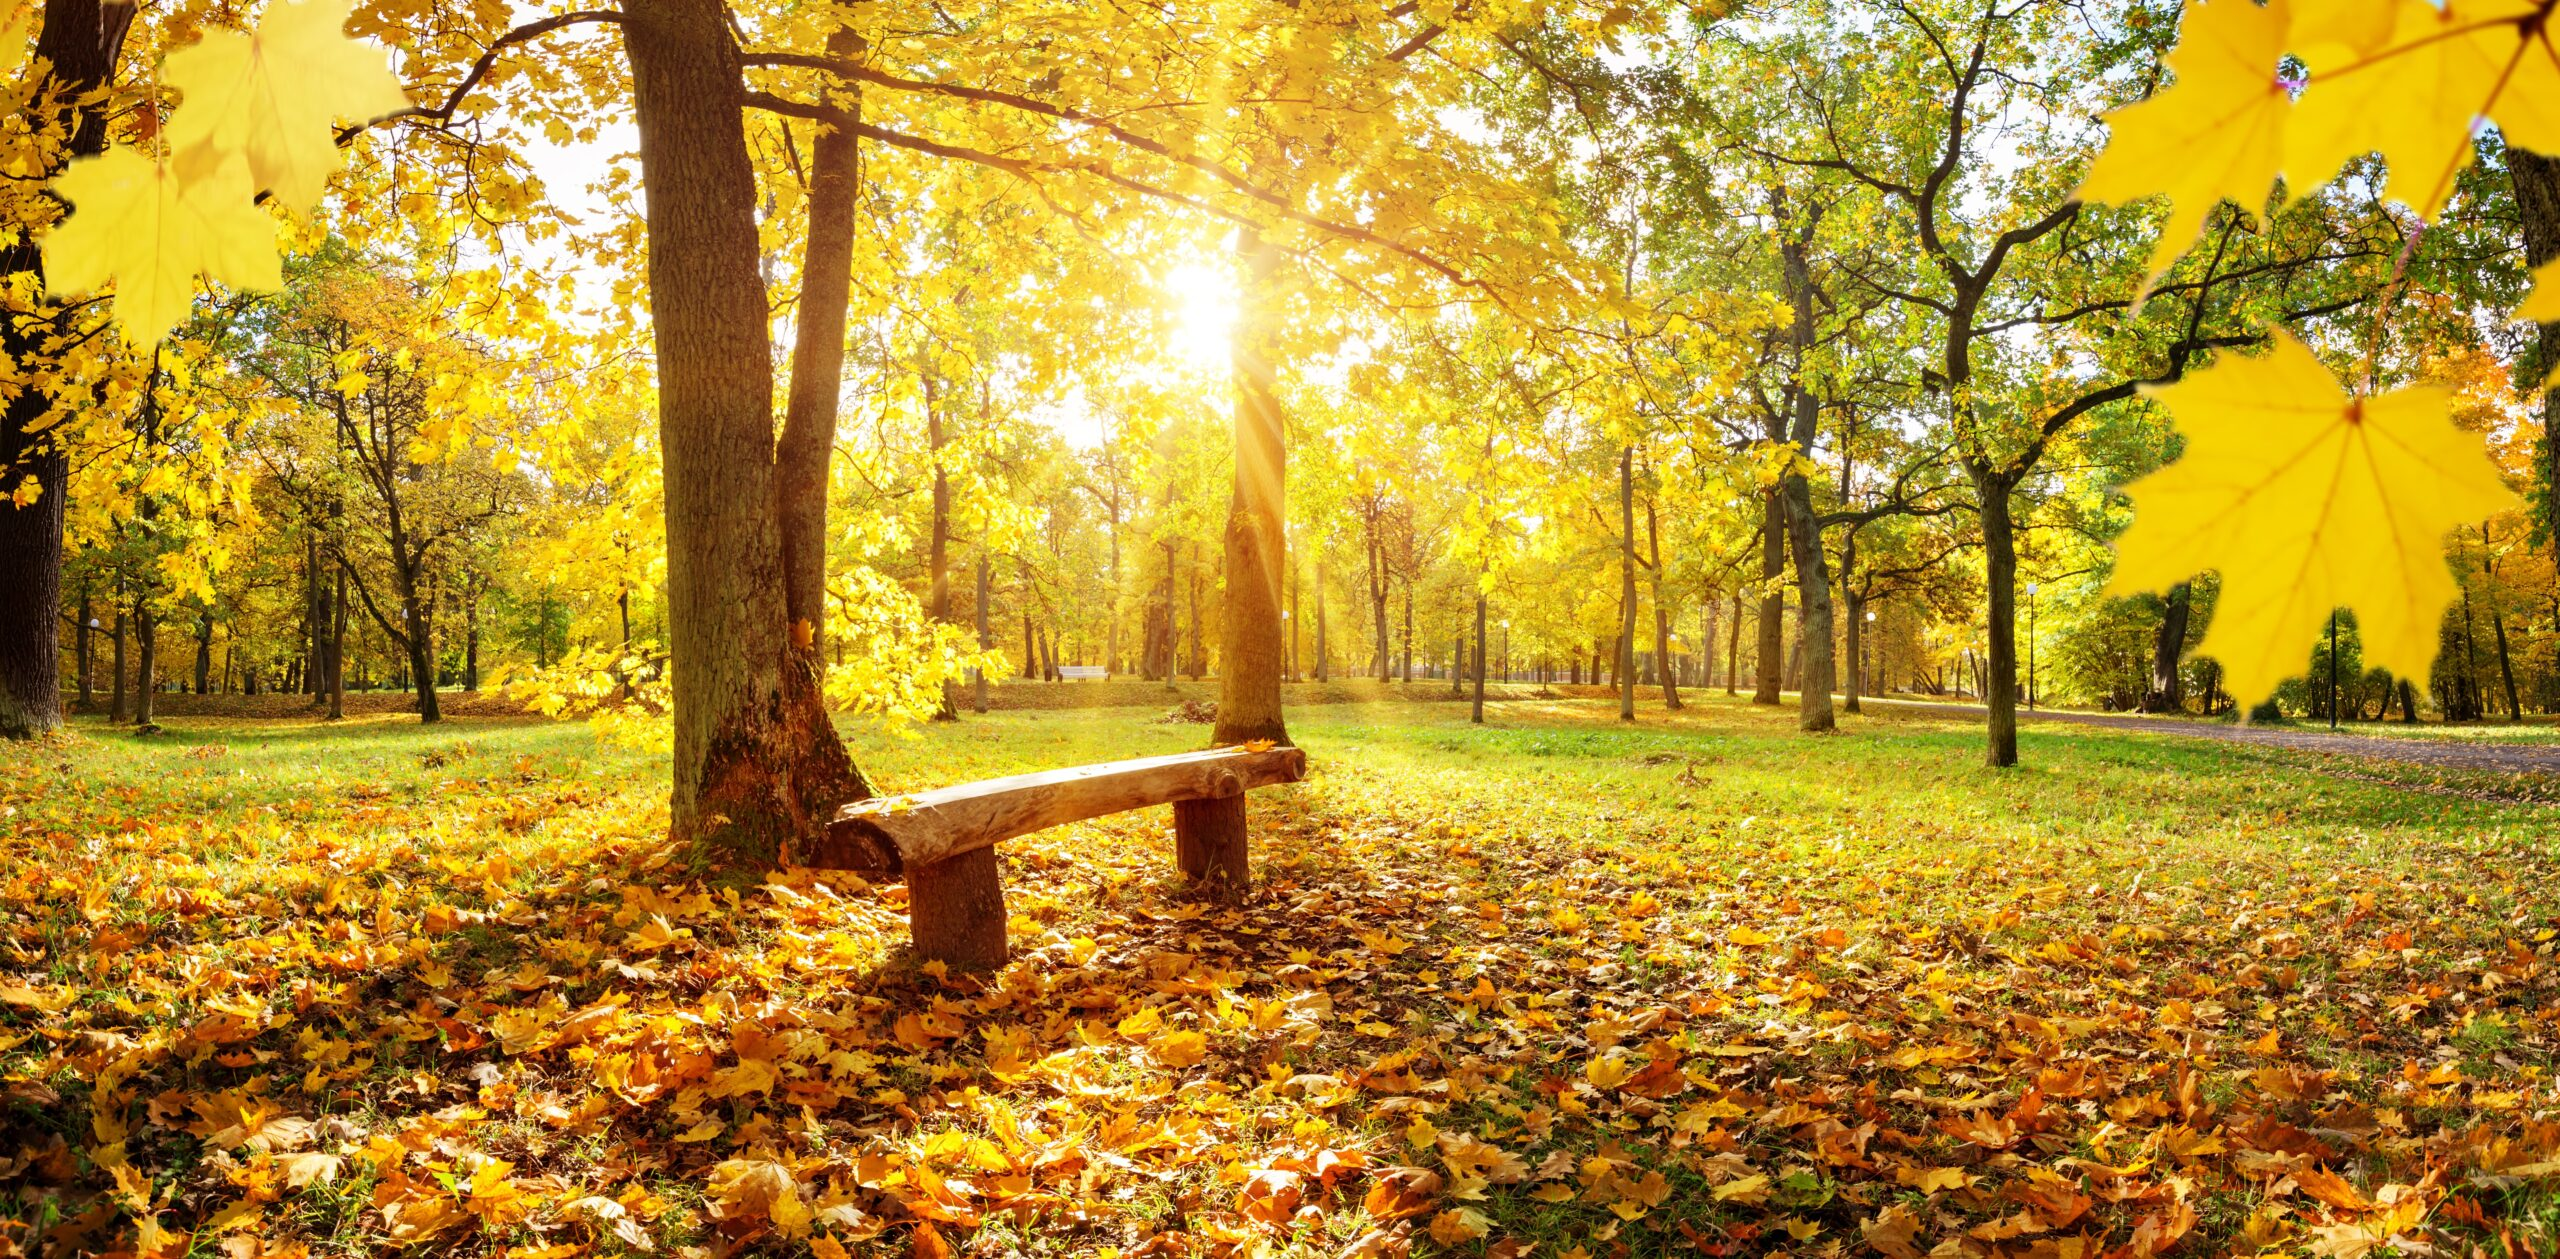 Ways to Enjoy Fall in its fullest